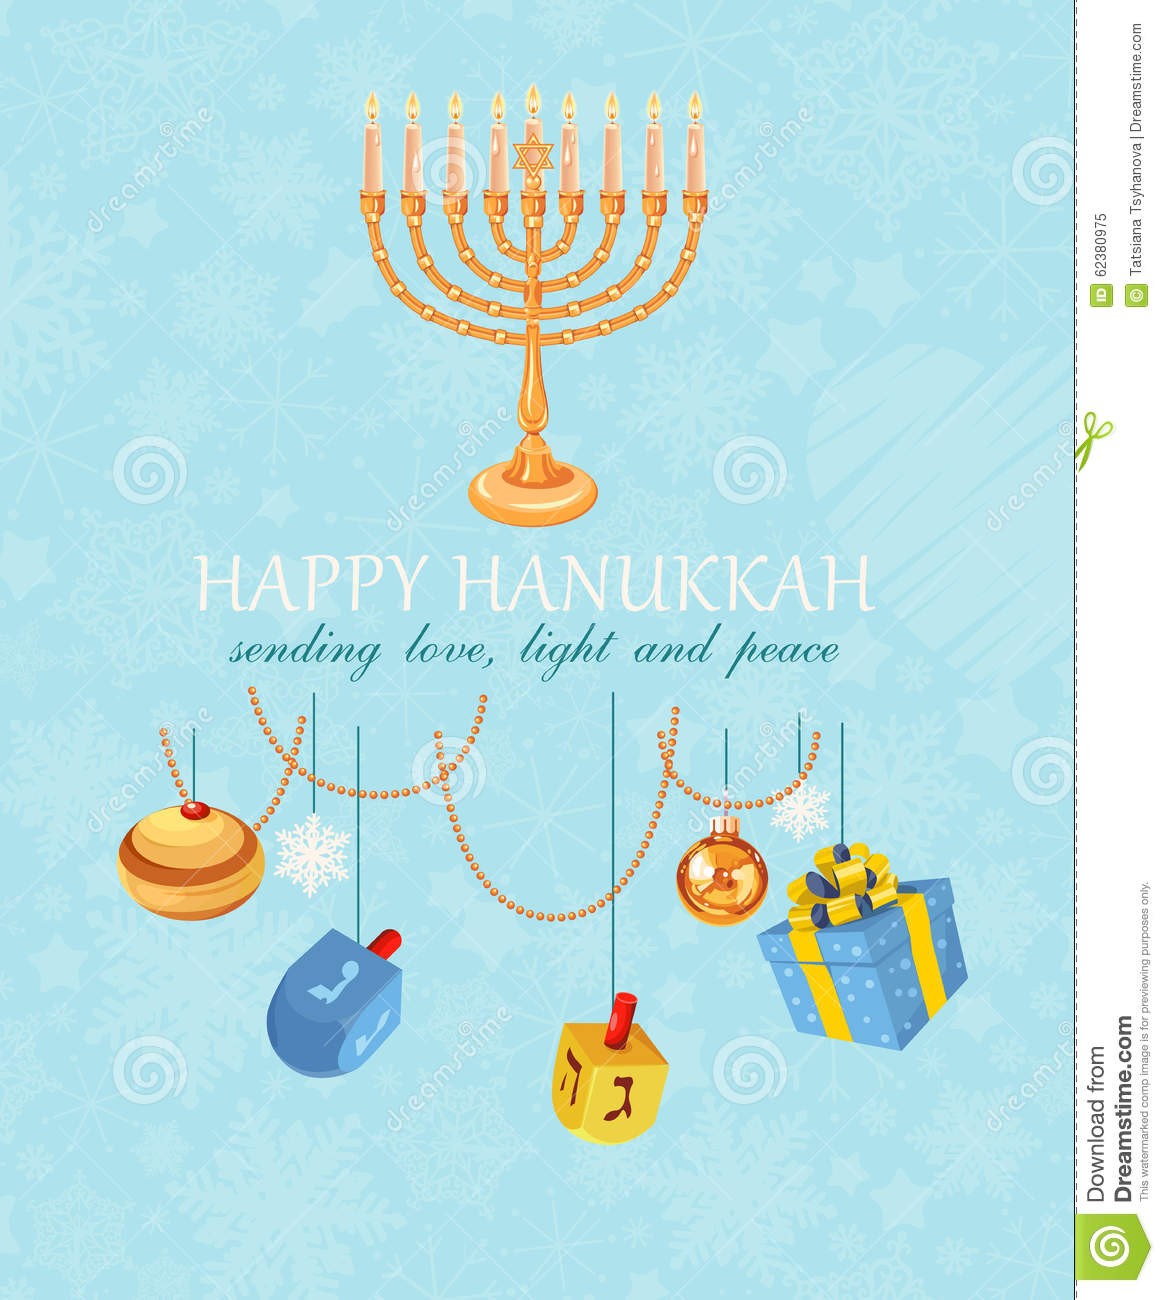 Happy hanukkah, jewish holiday. Hanukkah meora with colorful candles